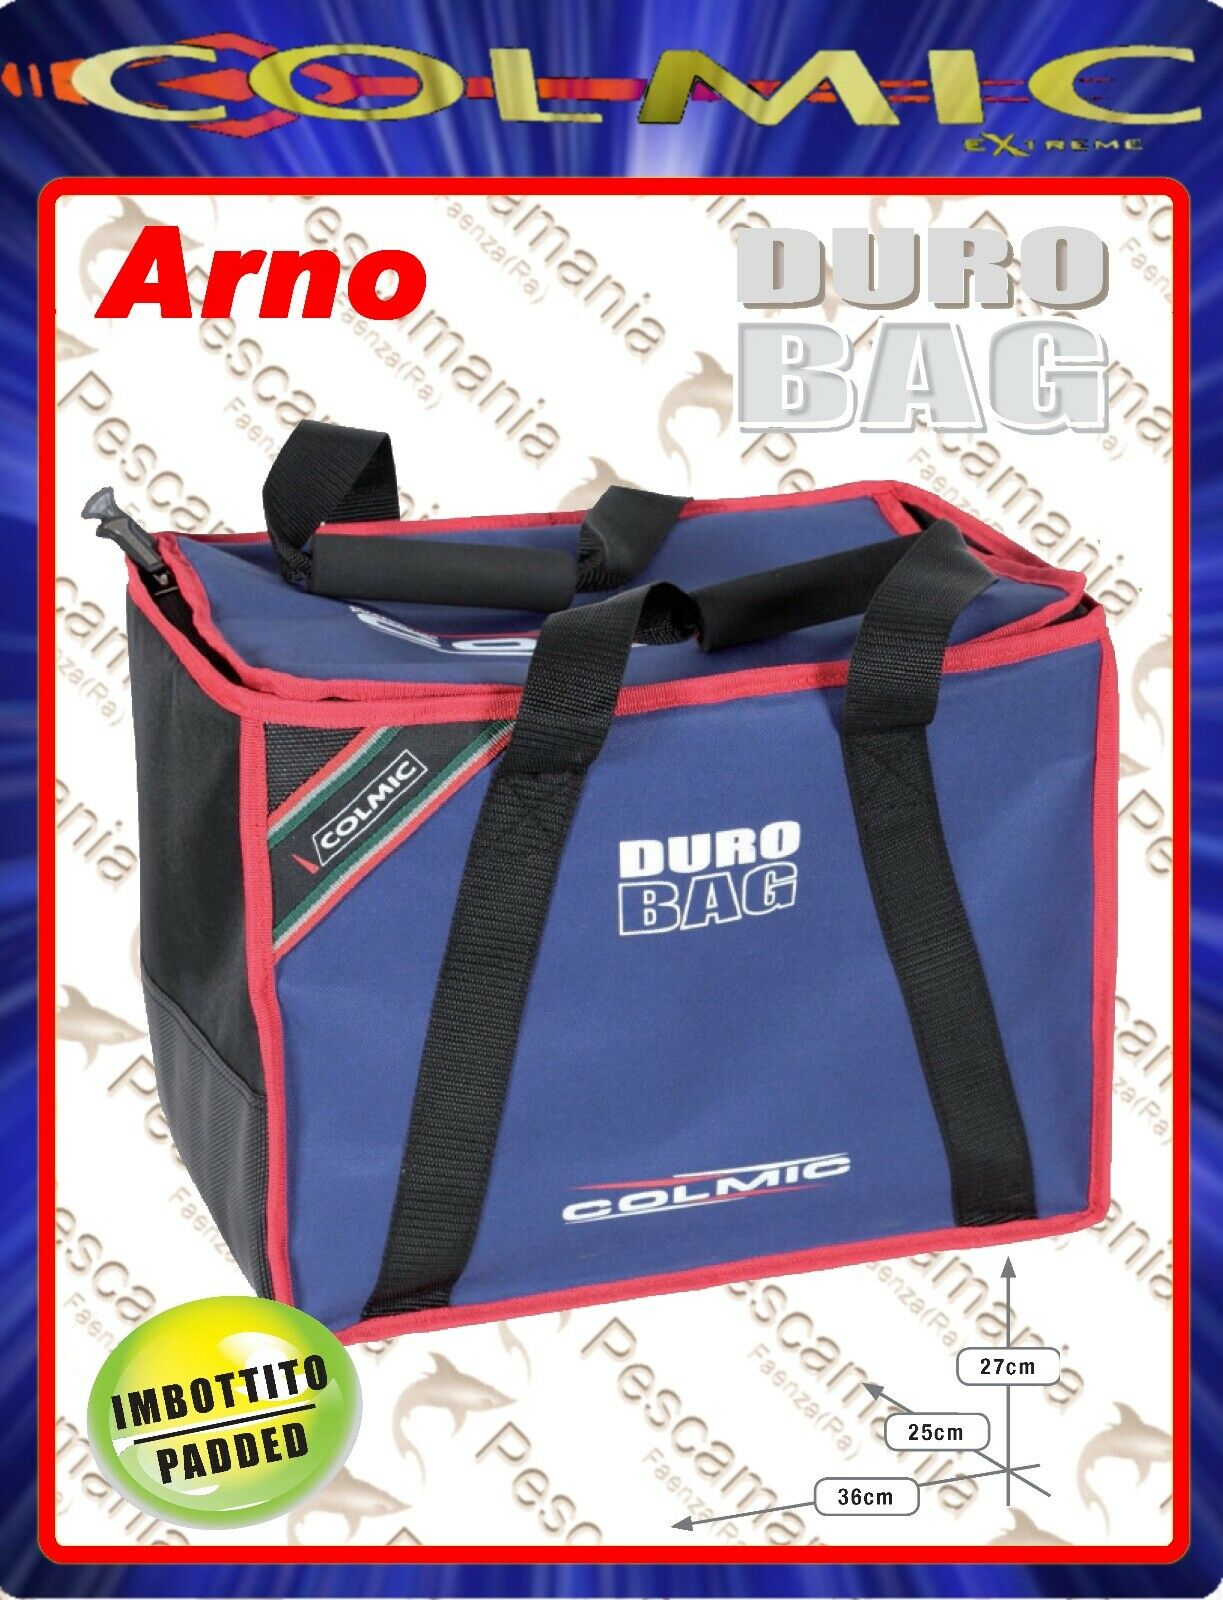 Bag Colmic Arno Duro red series rigida cm36x25 H27